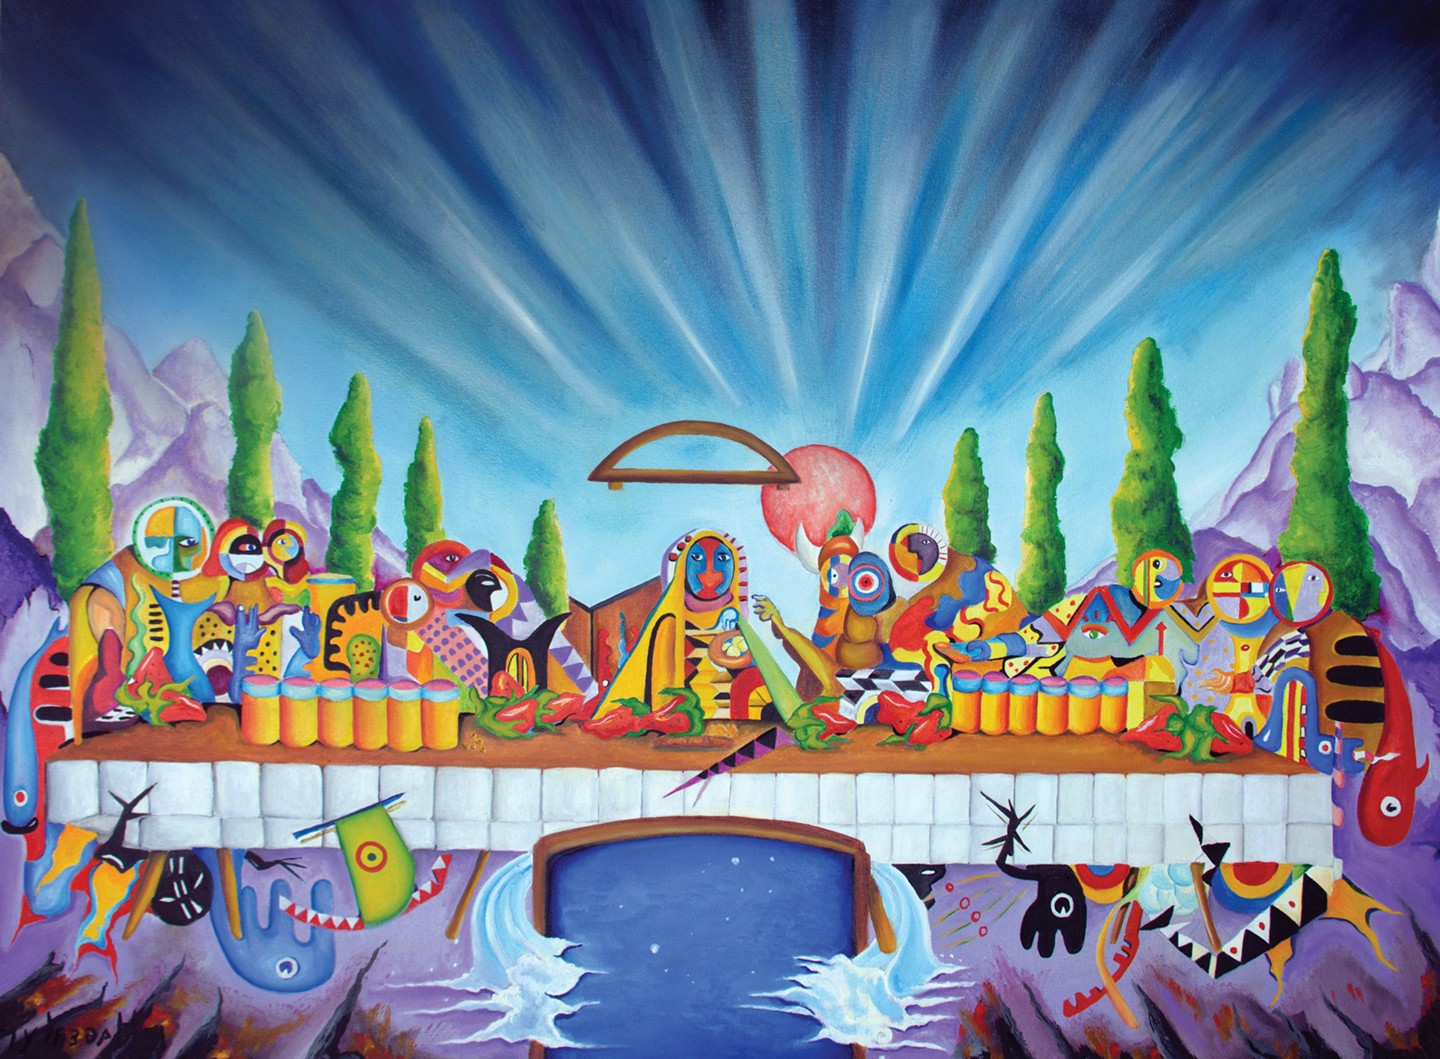 Surreal painting shows a psychedelic take on the Last Supper